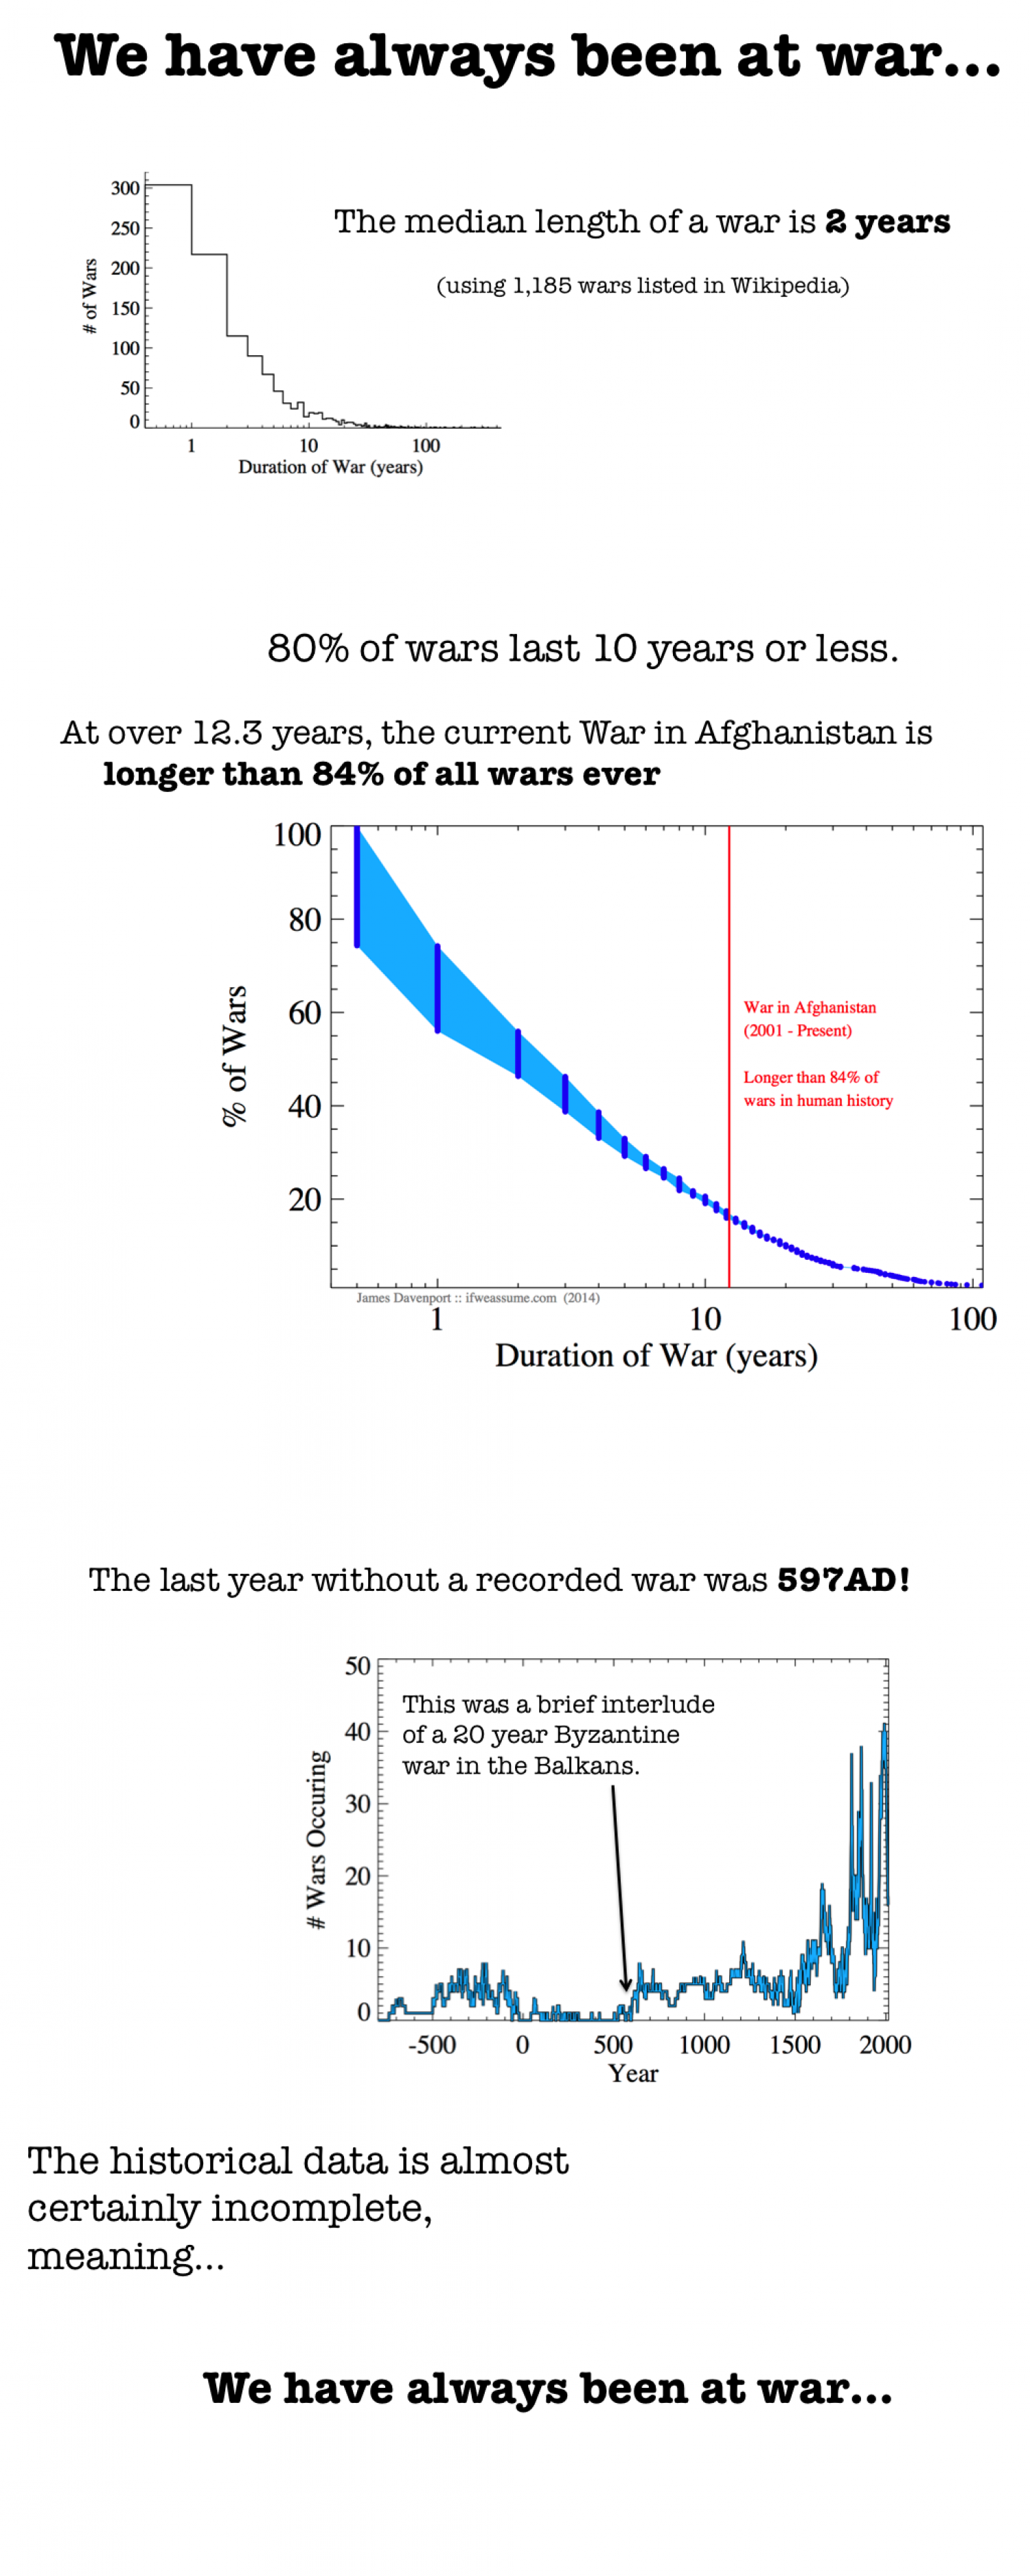 We have always been at war Infographic